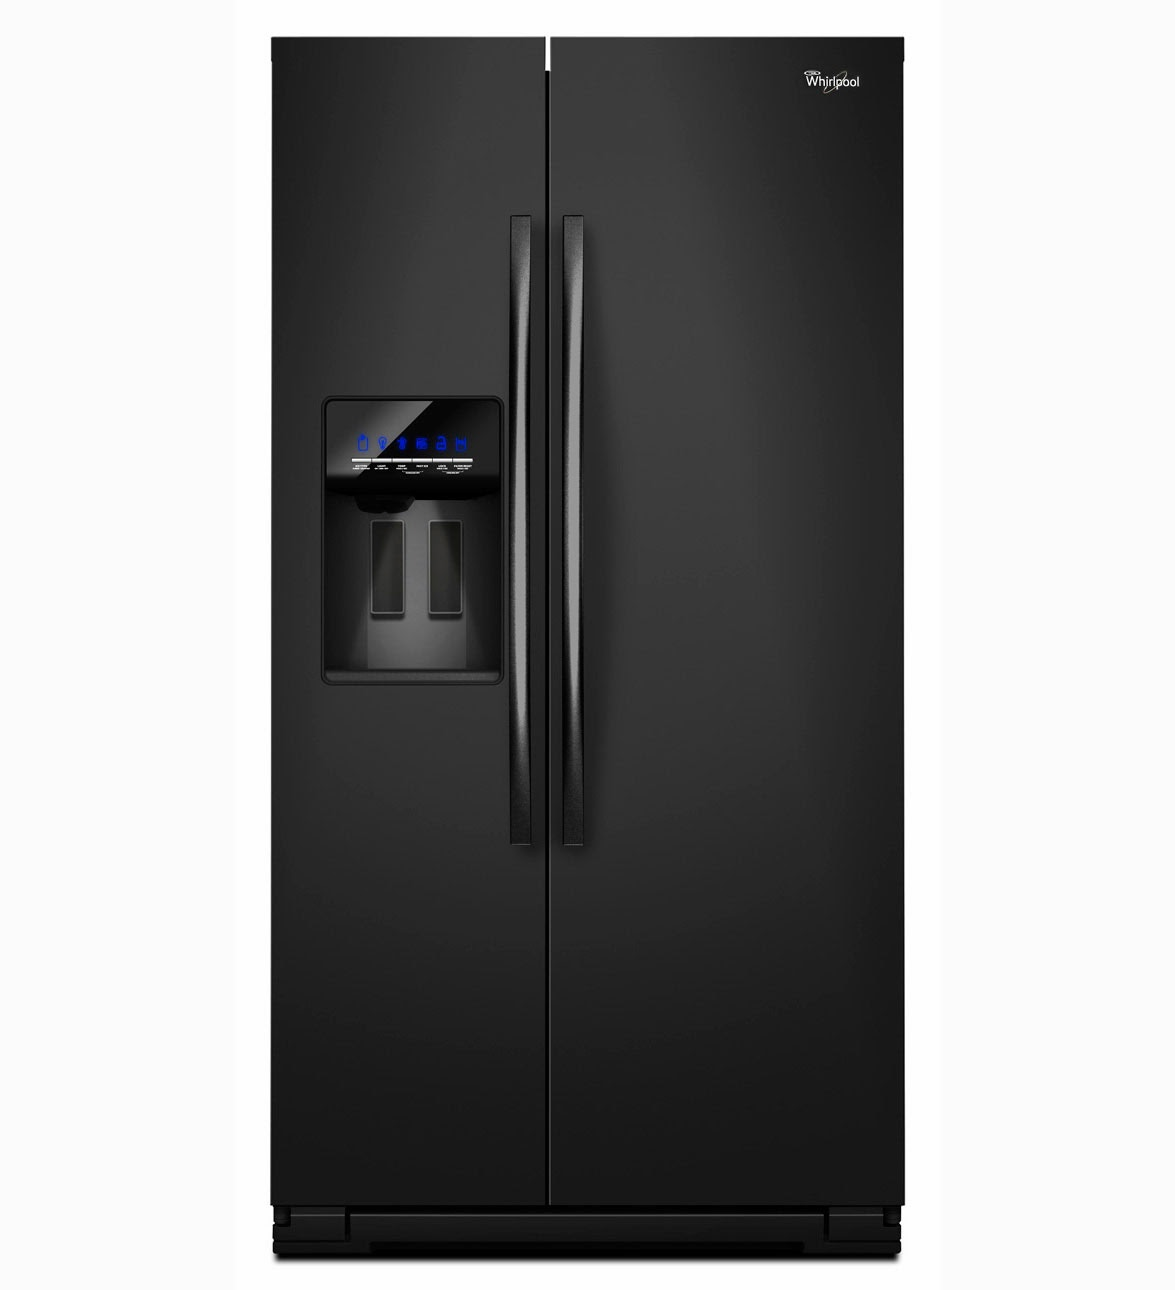 whirlpool refrigerator brand wsf26c2exb side by side. Black Bedroom Furniture Sets. Home Design Ideas